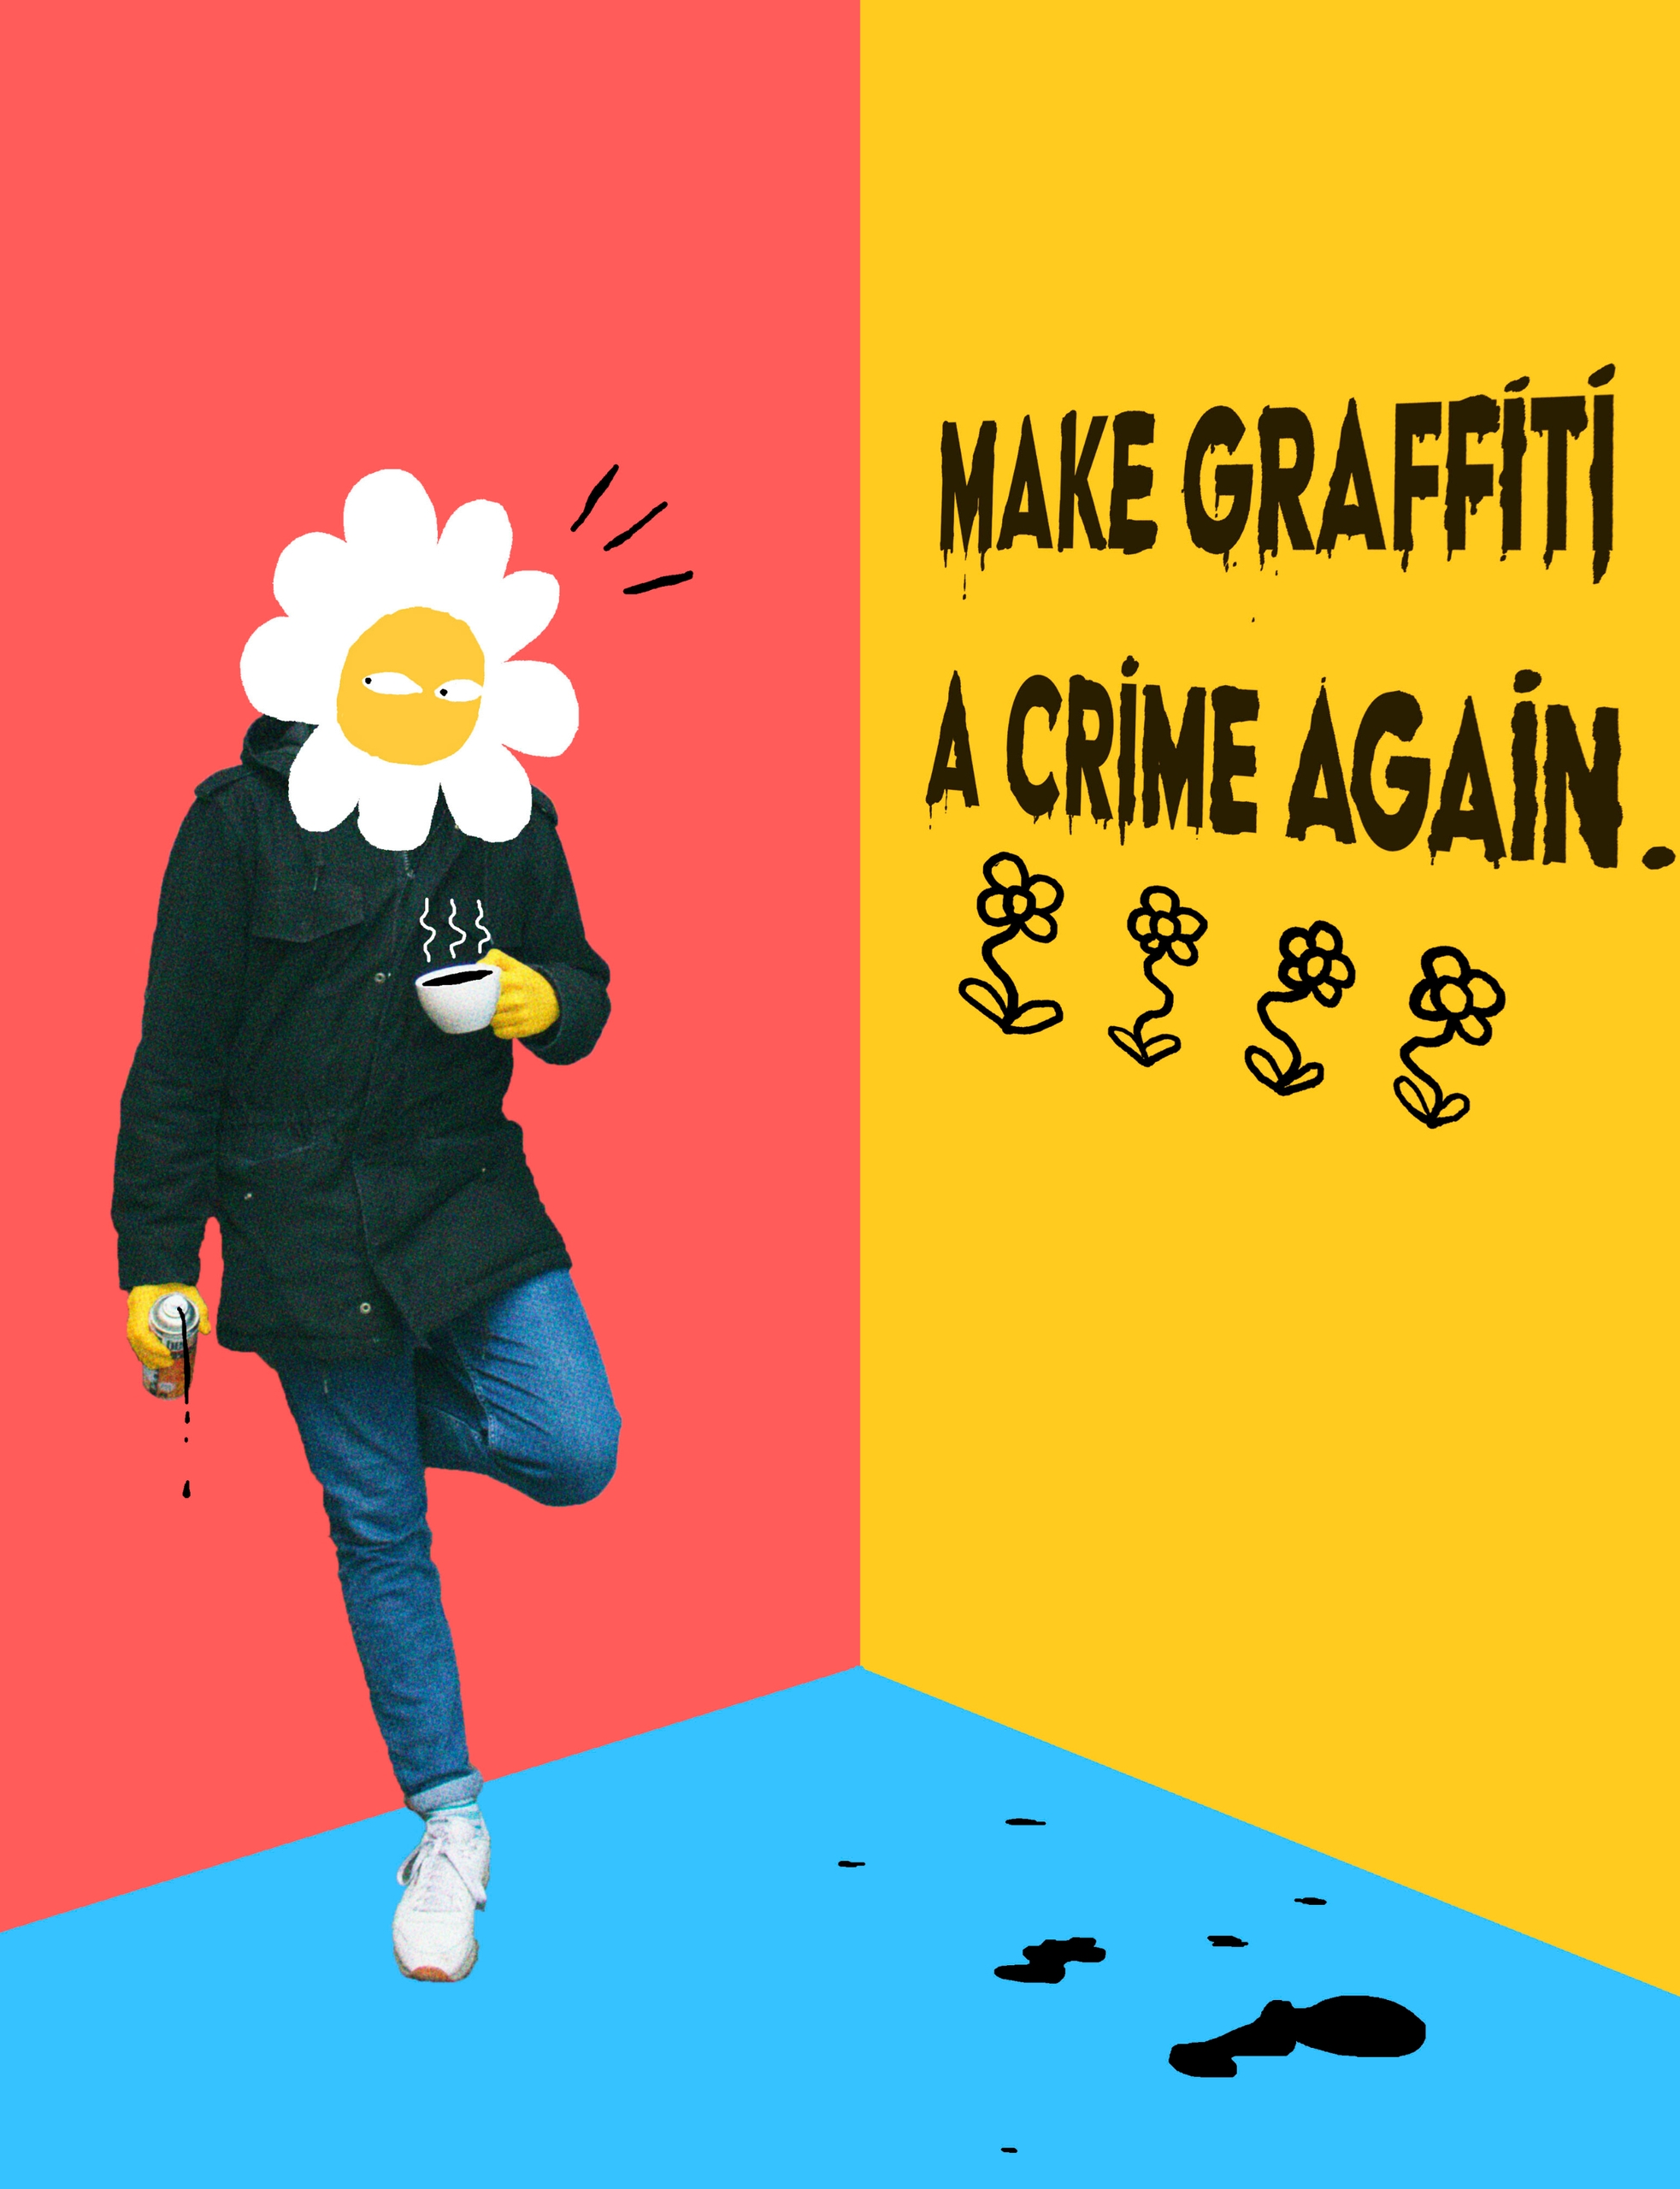 Graffiti Crime 2019 / Digital d - labrosse | ello